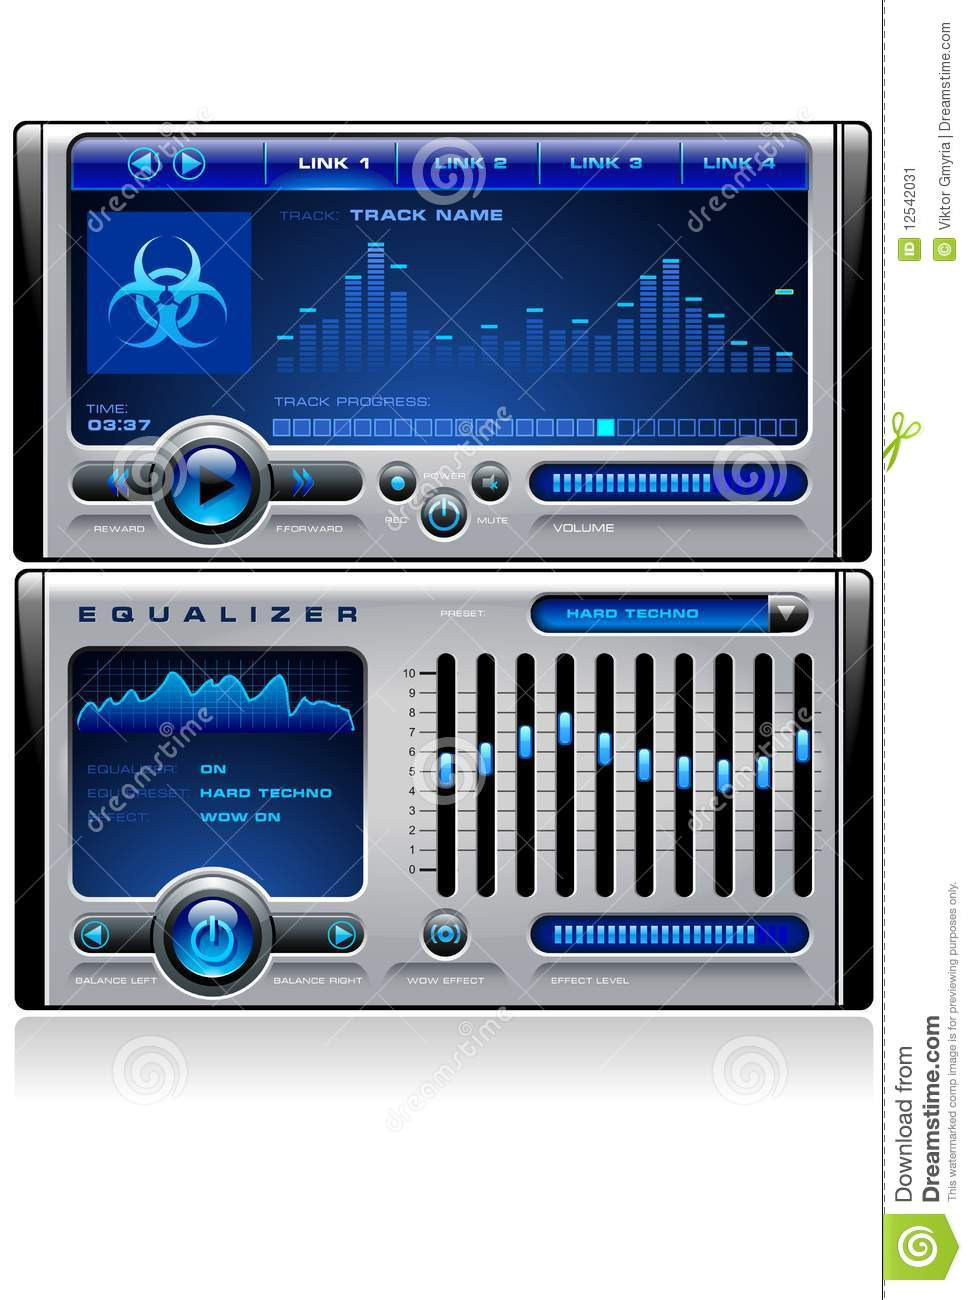 2 unlimited songs mp3 free download